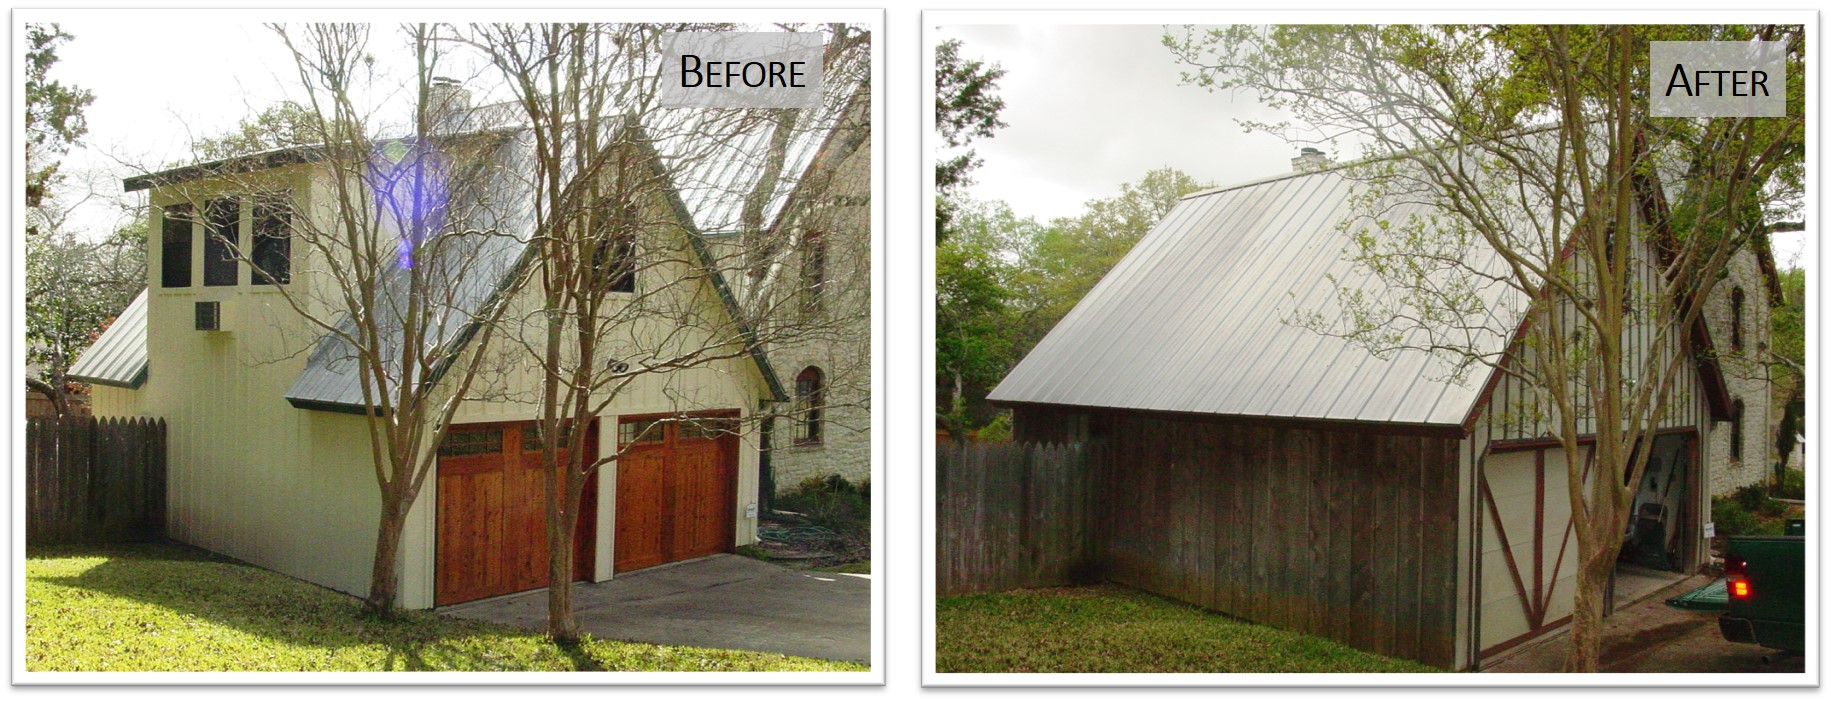 4802 WB, Garage Side, Before and After, Bear Creek Homes.jpg